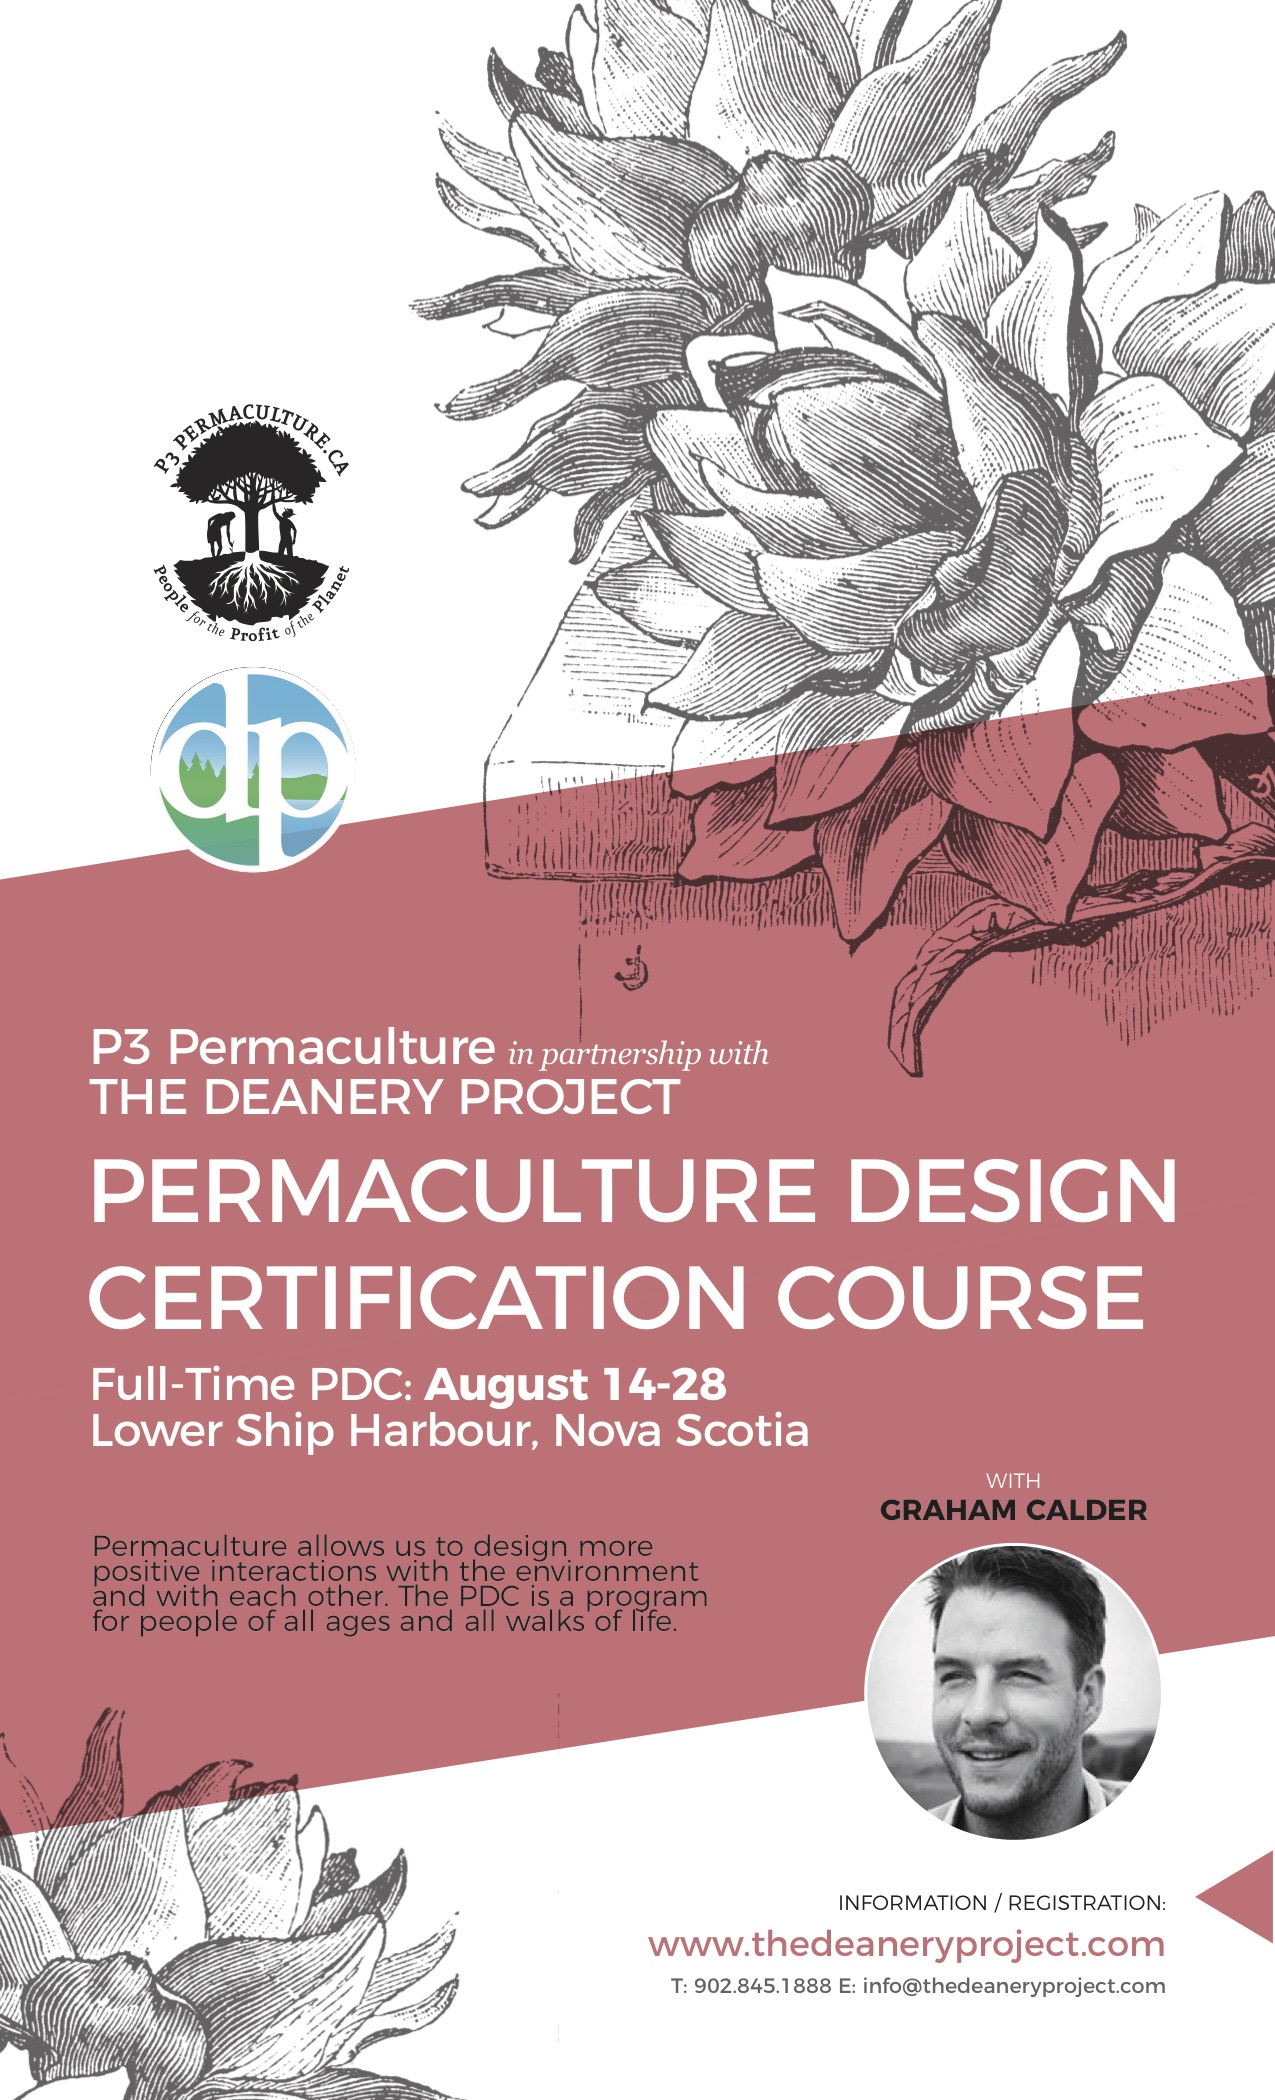 Permaculture Design Certification Course with P3- The Deanery Project